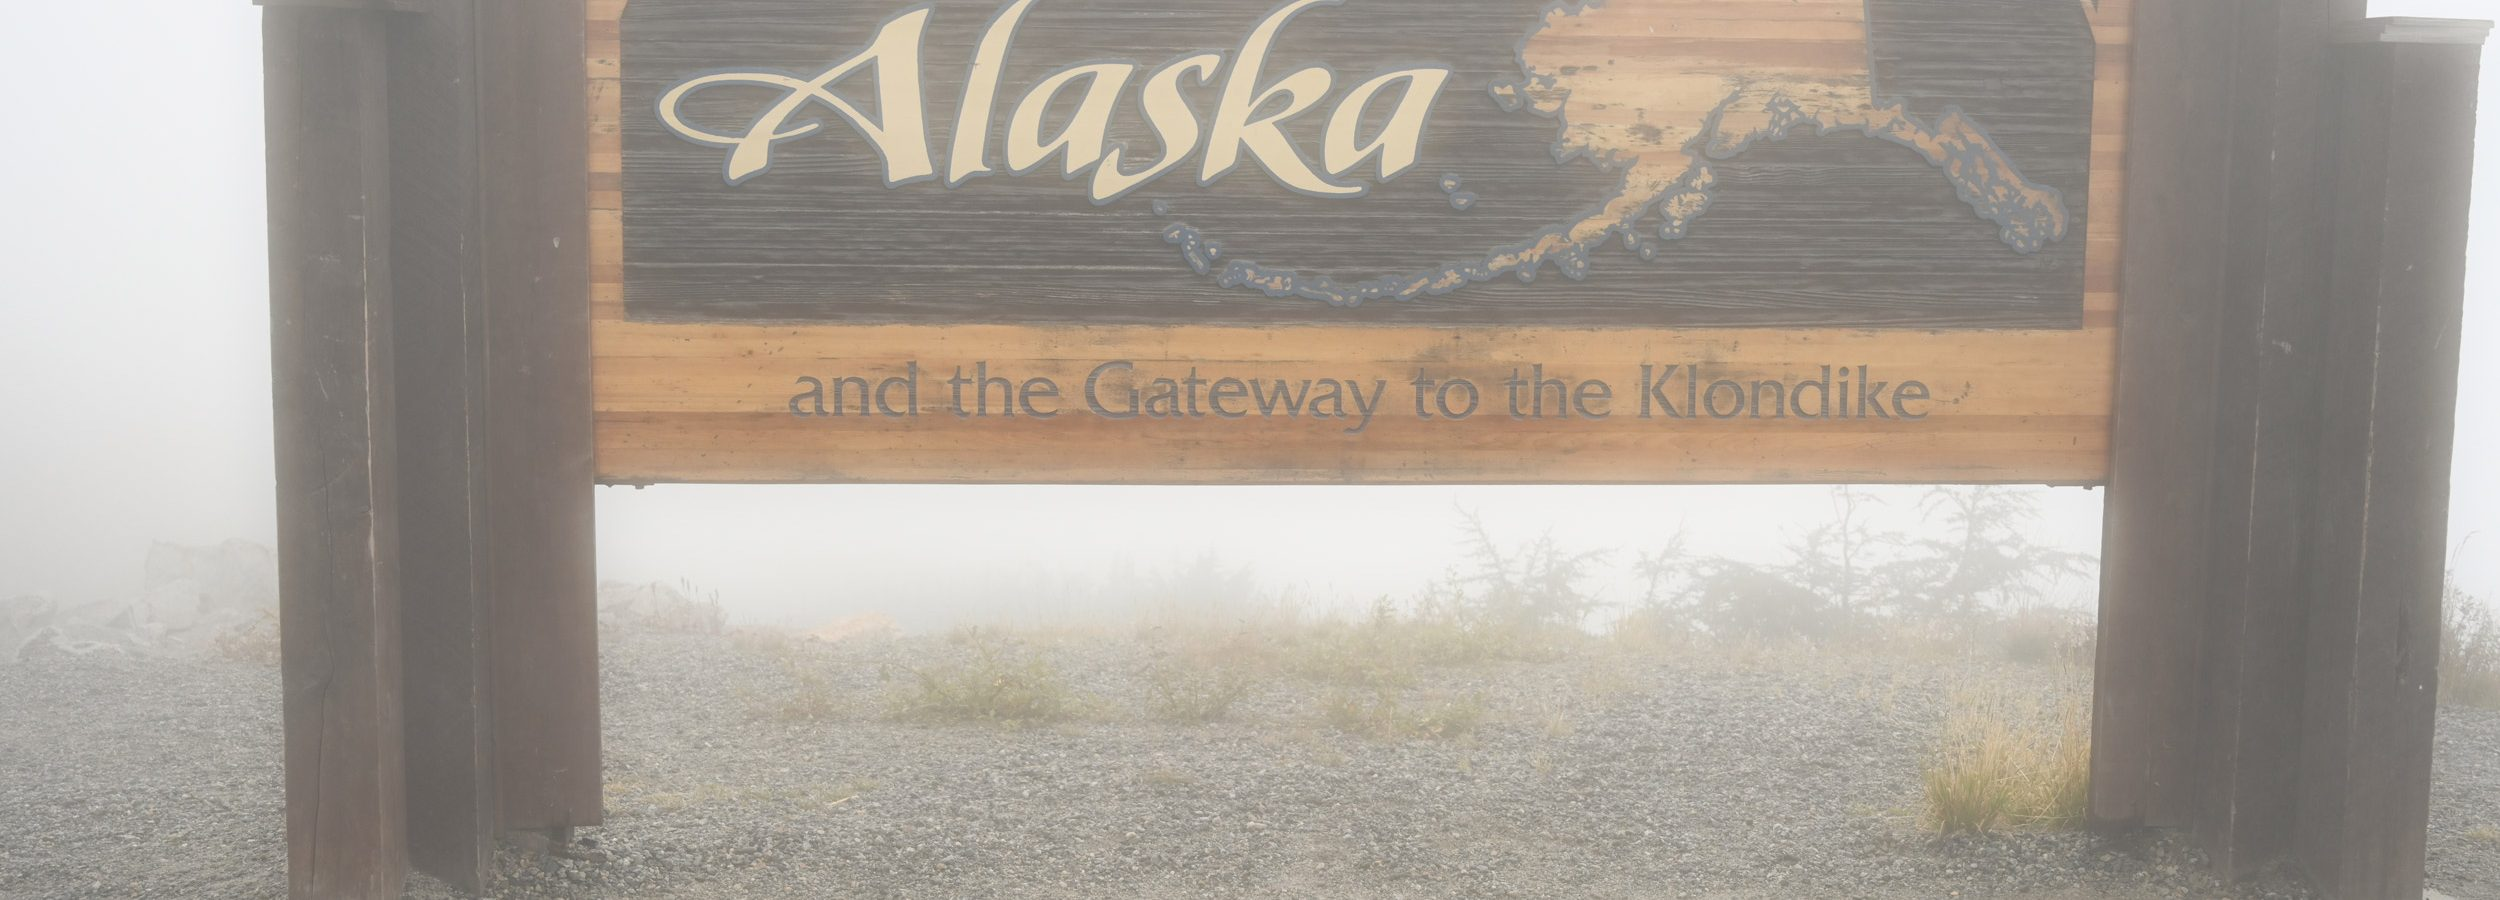 Welcome to Alaska! :)